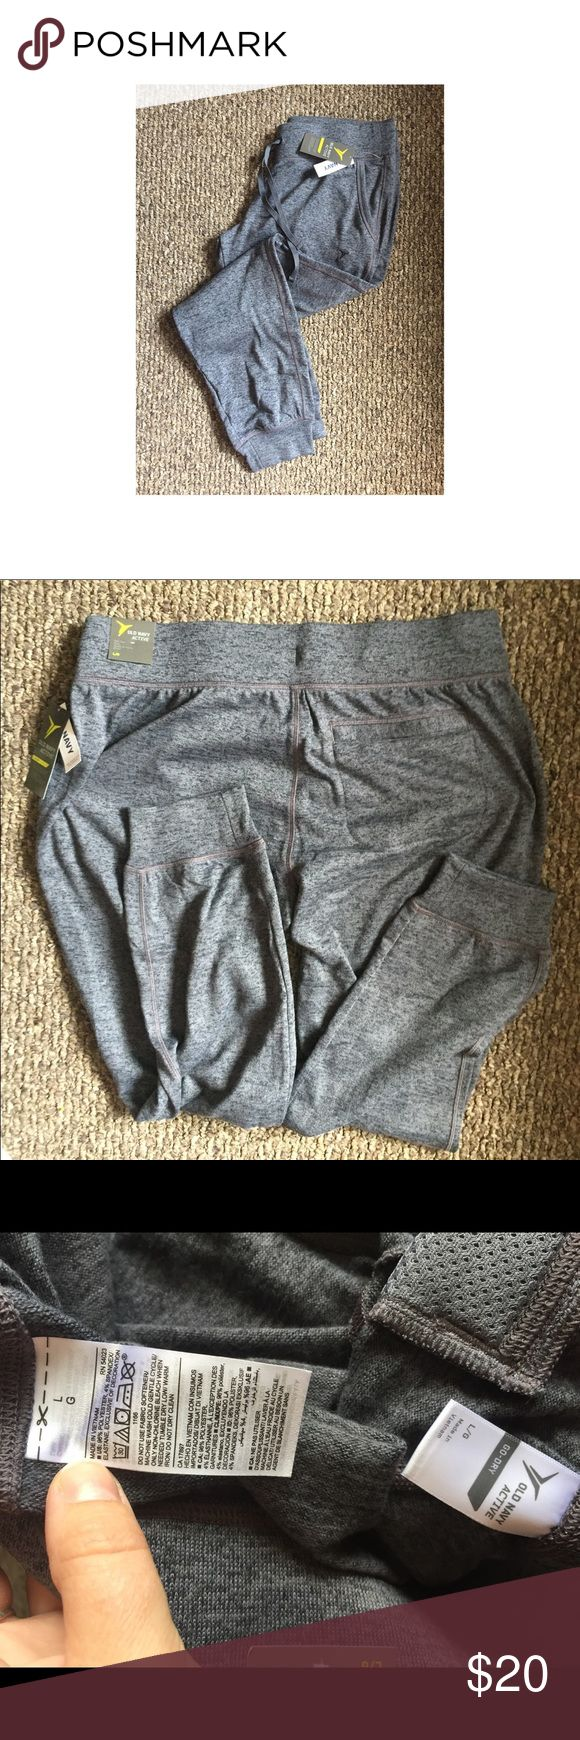 NWT OLD NAVY ACTIVE WOMENS JOGGERS NWT WOMENS OLD NAVY ACTIVE JOGGERS SIZE L. charcoal grey color. Super soft! Two front pockets, one back pocket. Mid rise. Old Navy Pants Track Pants & Joggers